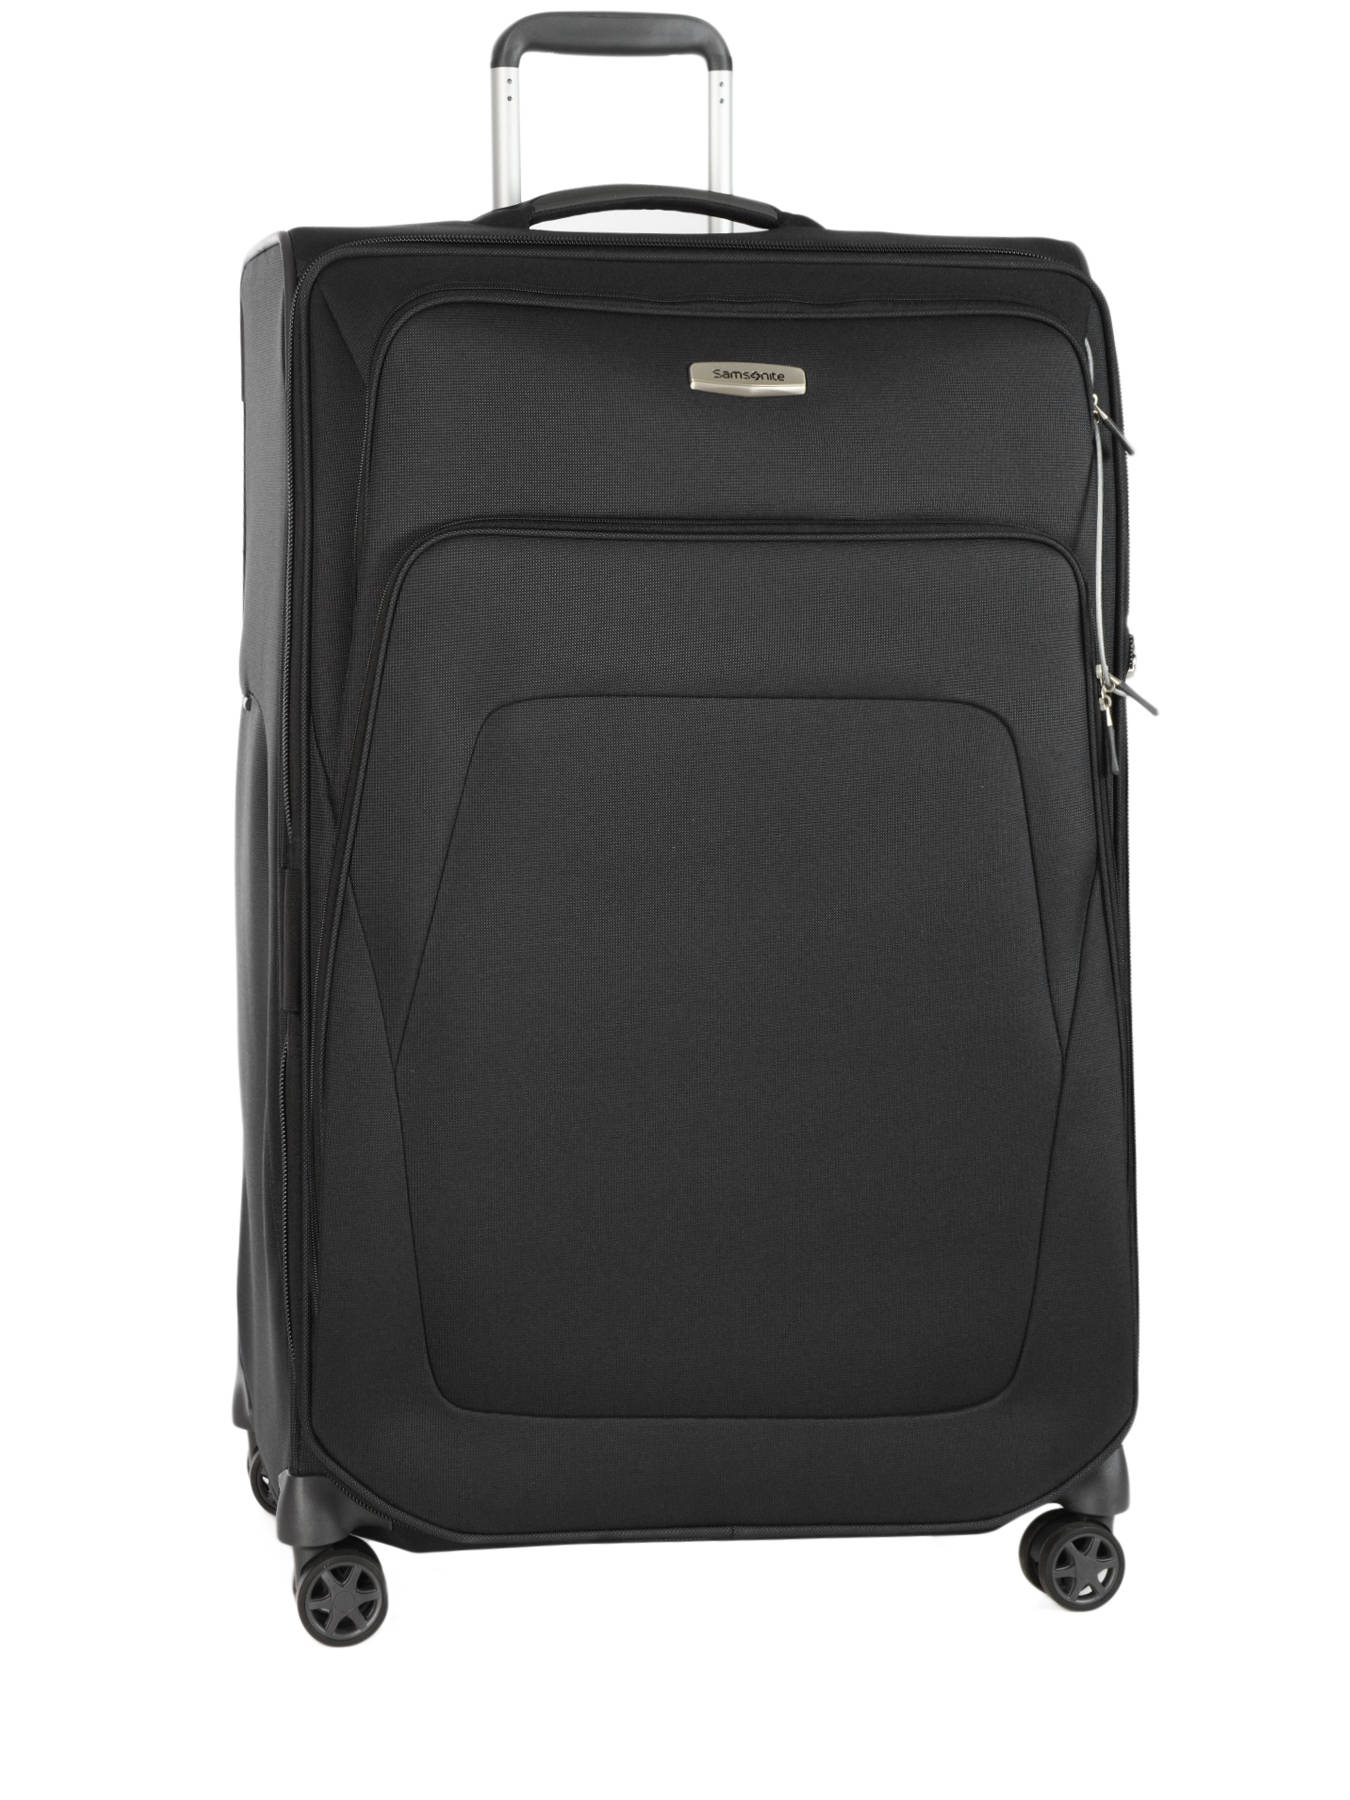 valise souple samsonite spark sng spark sng sur. Black Bedroom Furniture Sets. Home Design Ideas